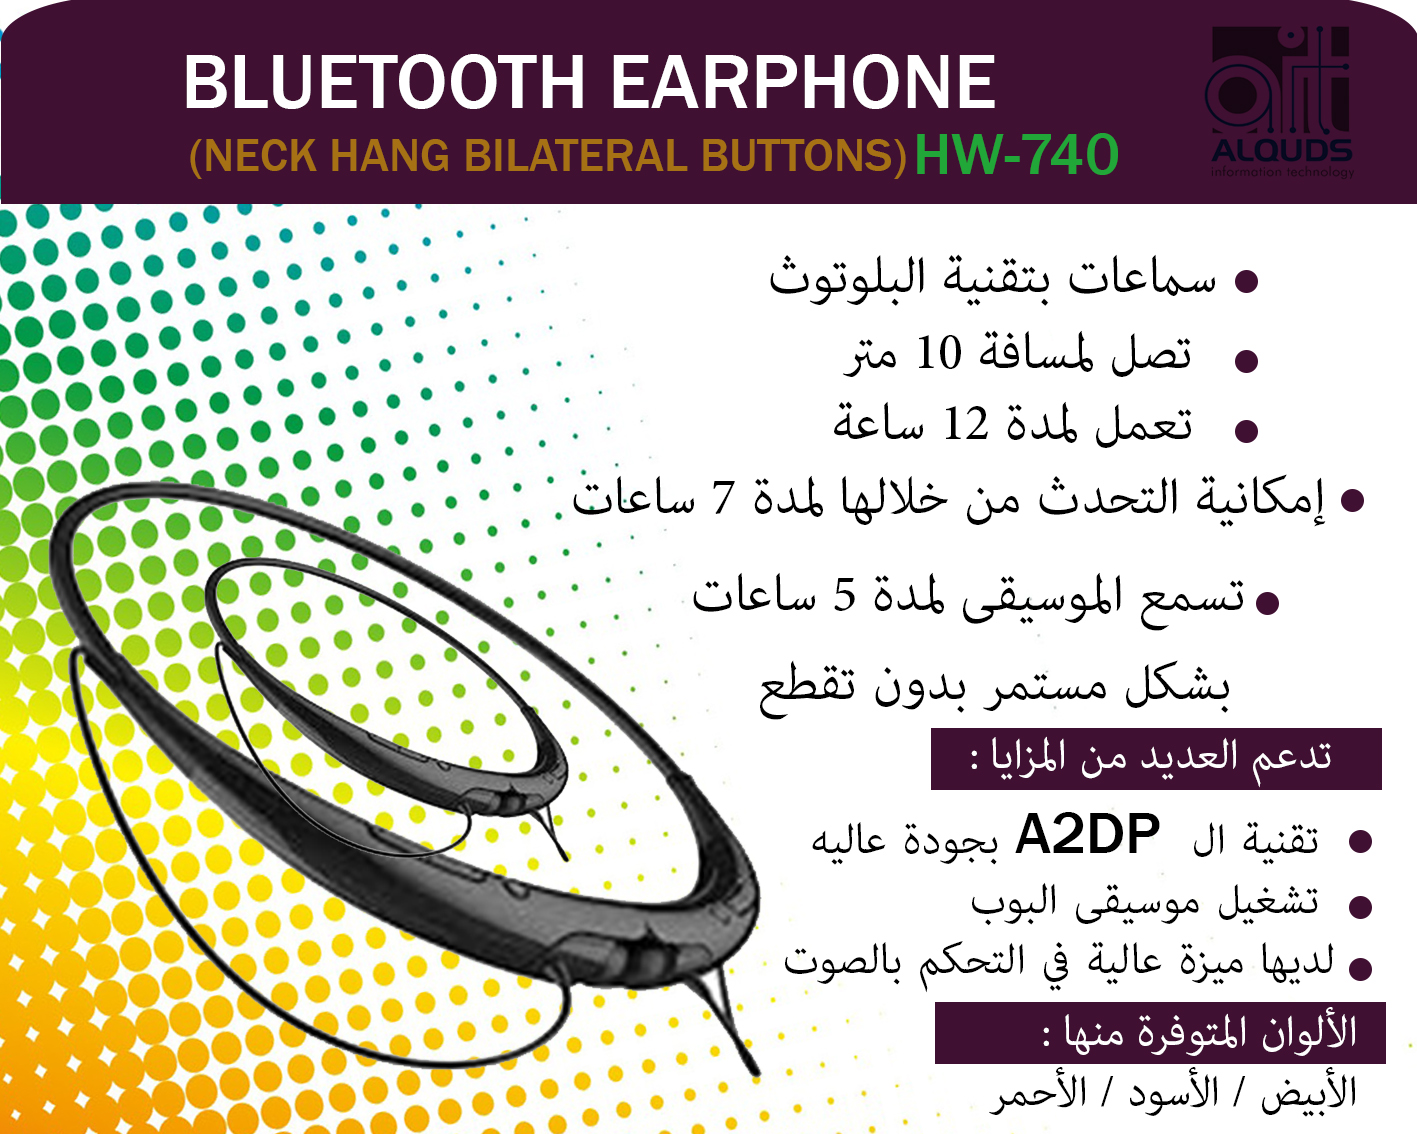 BLUETOOTH EARPHONE     HW-740